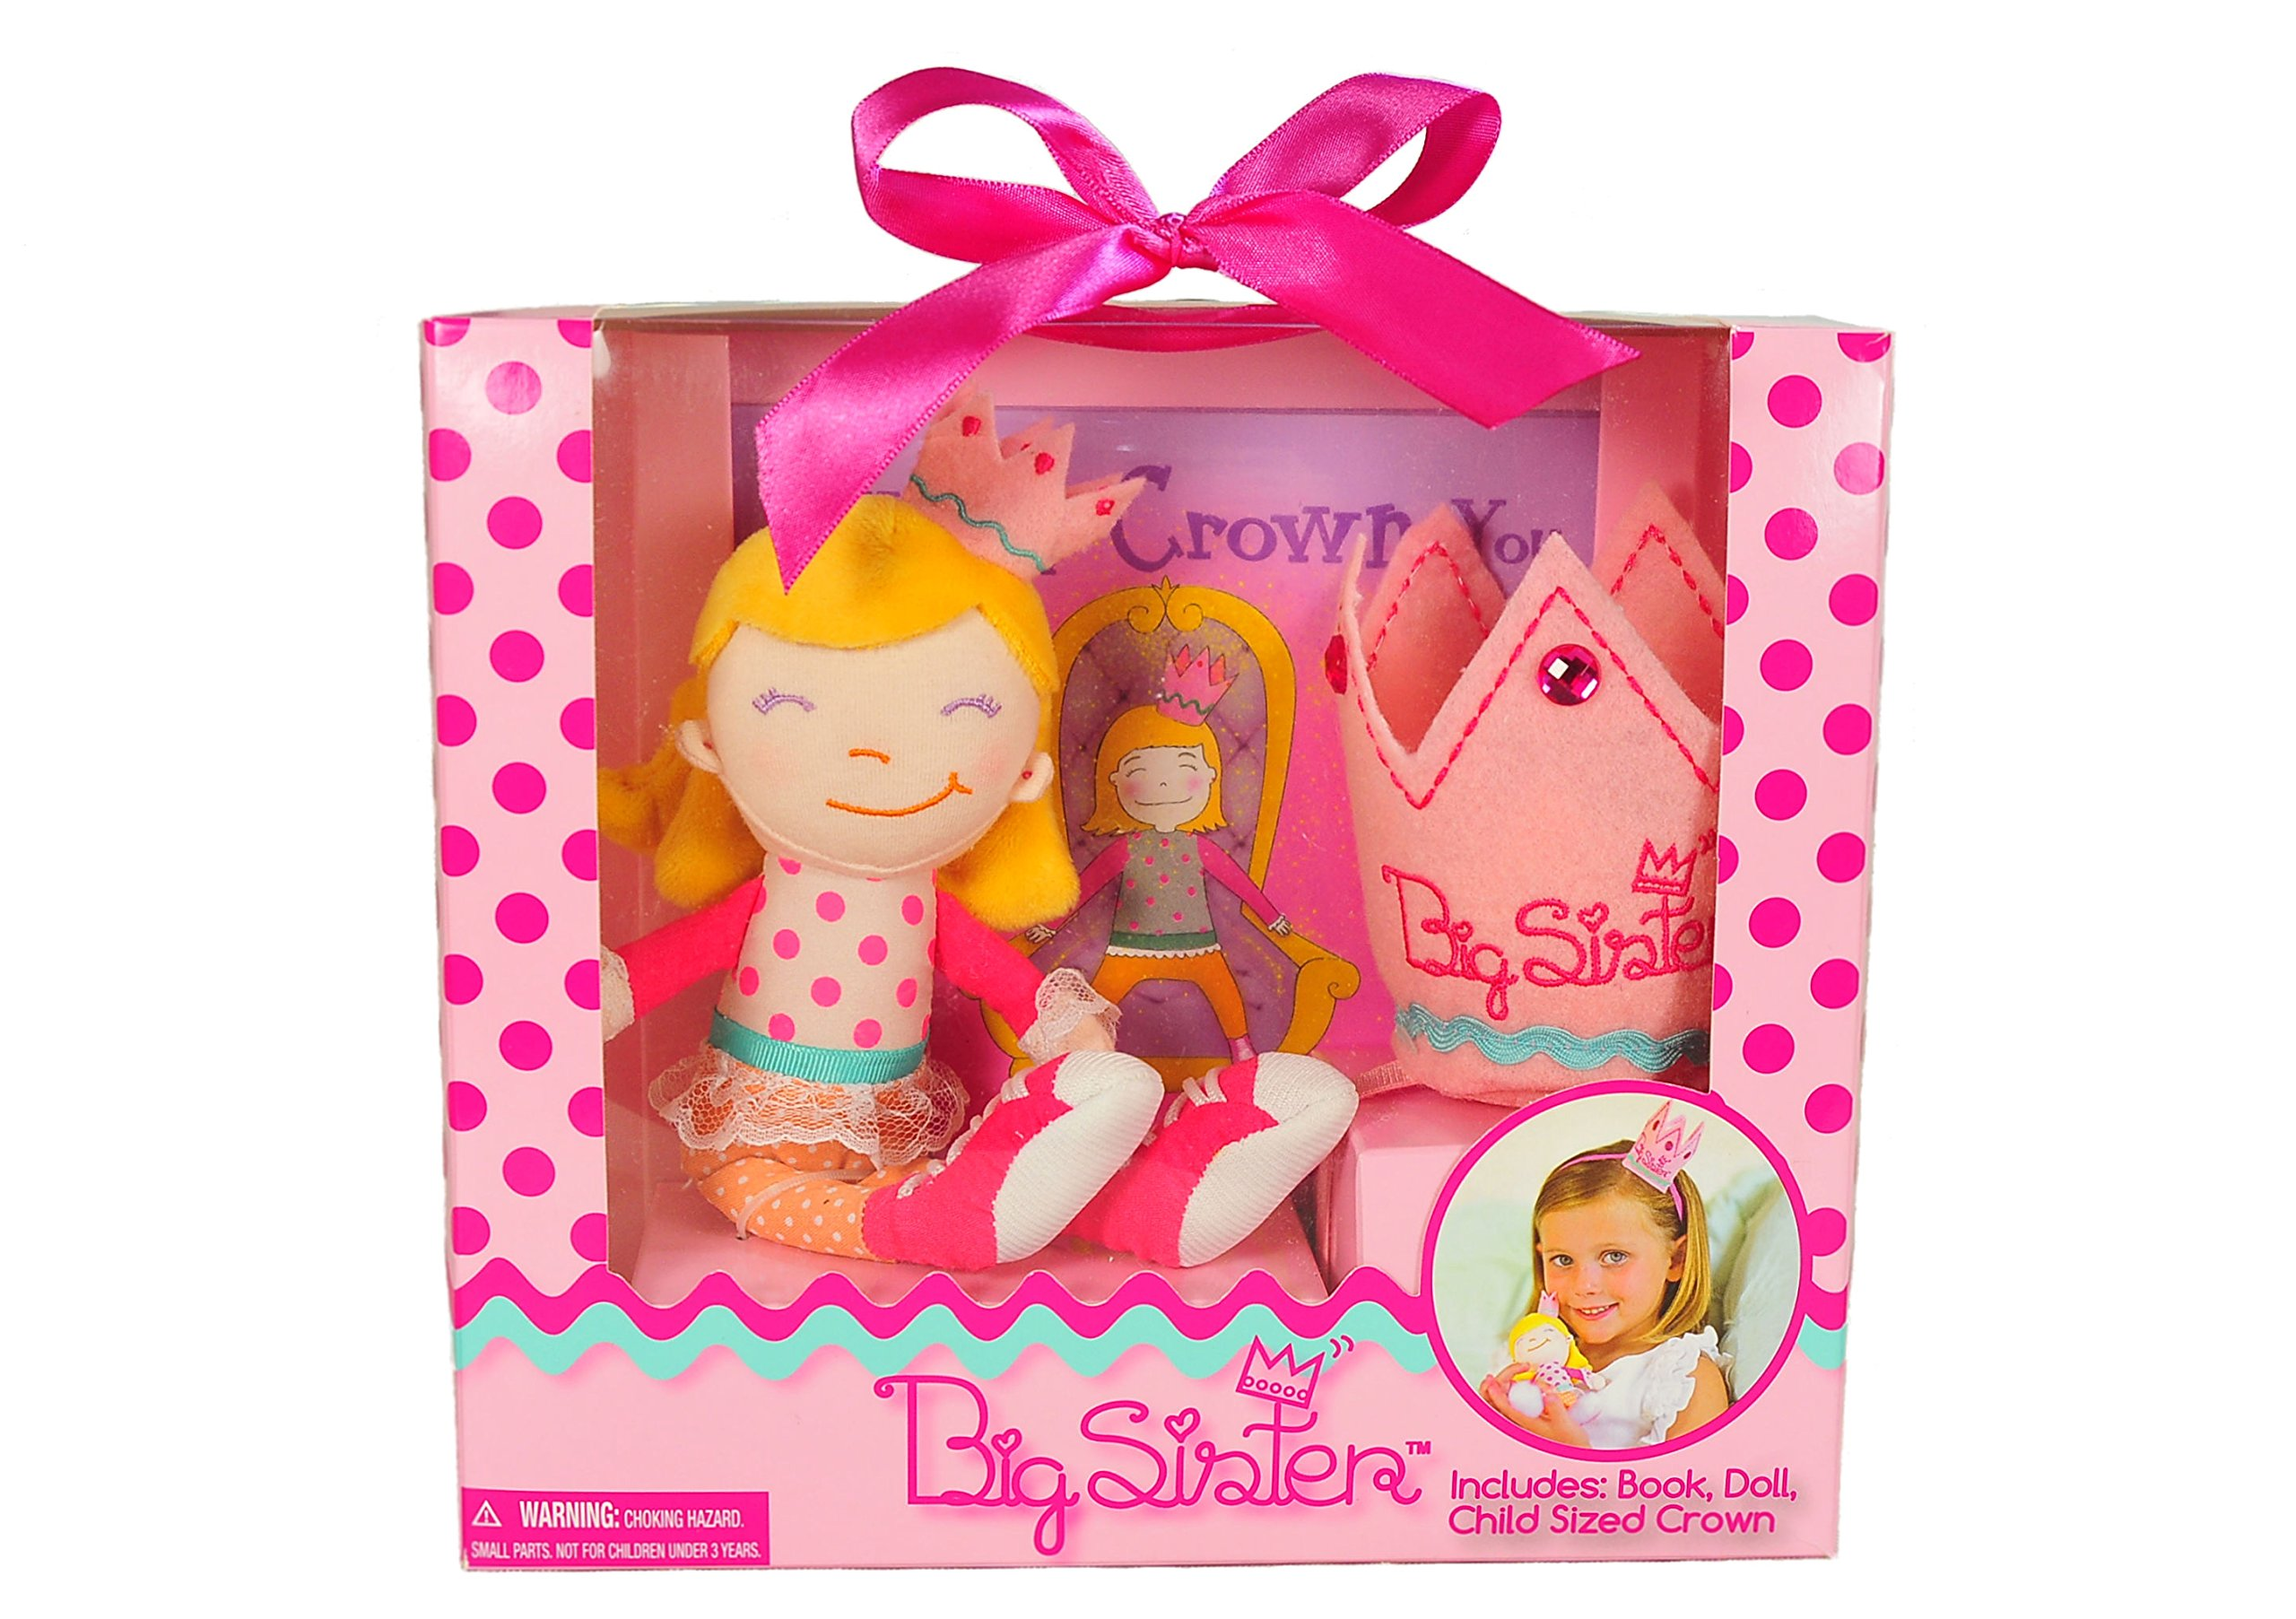 Tickle & Main Big Sister Gift Set- I Hereby Crown You Big Sister Book, Doll, and Child Size Crown by Tickle & Main (Image #4)